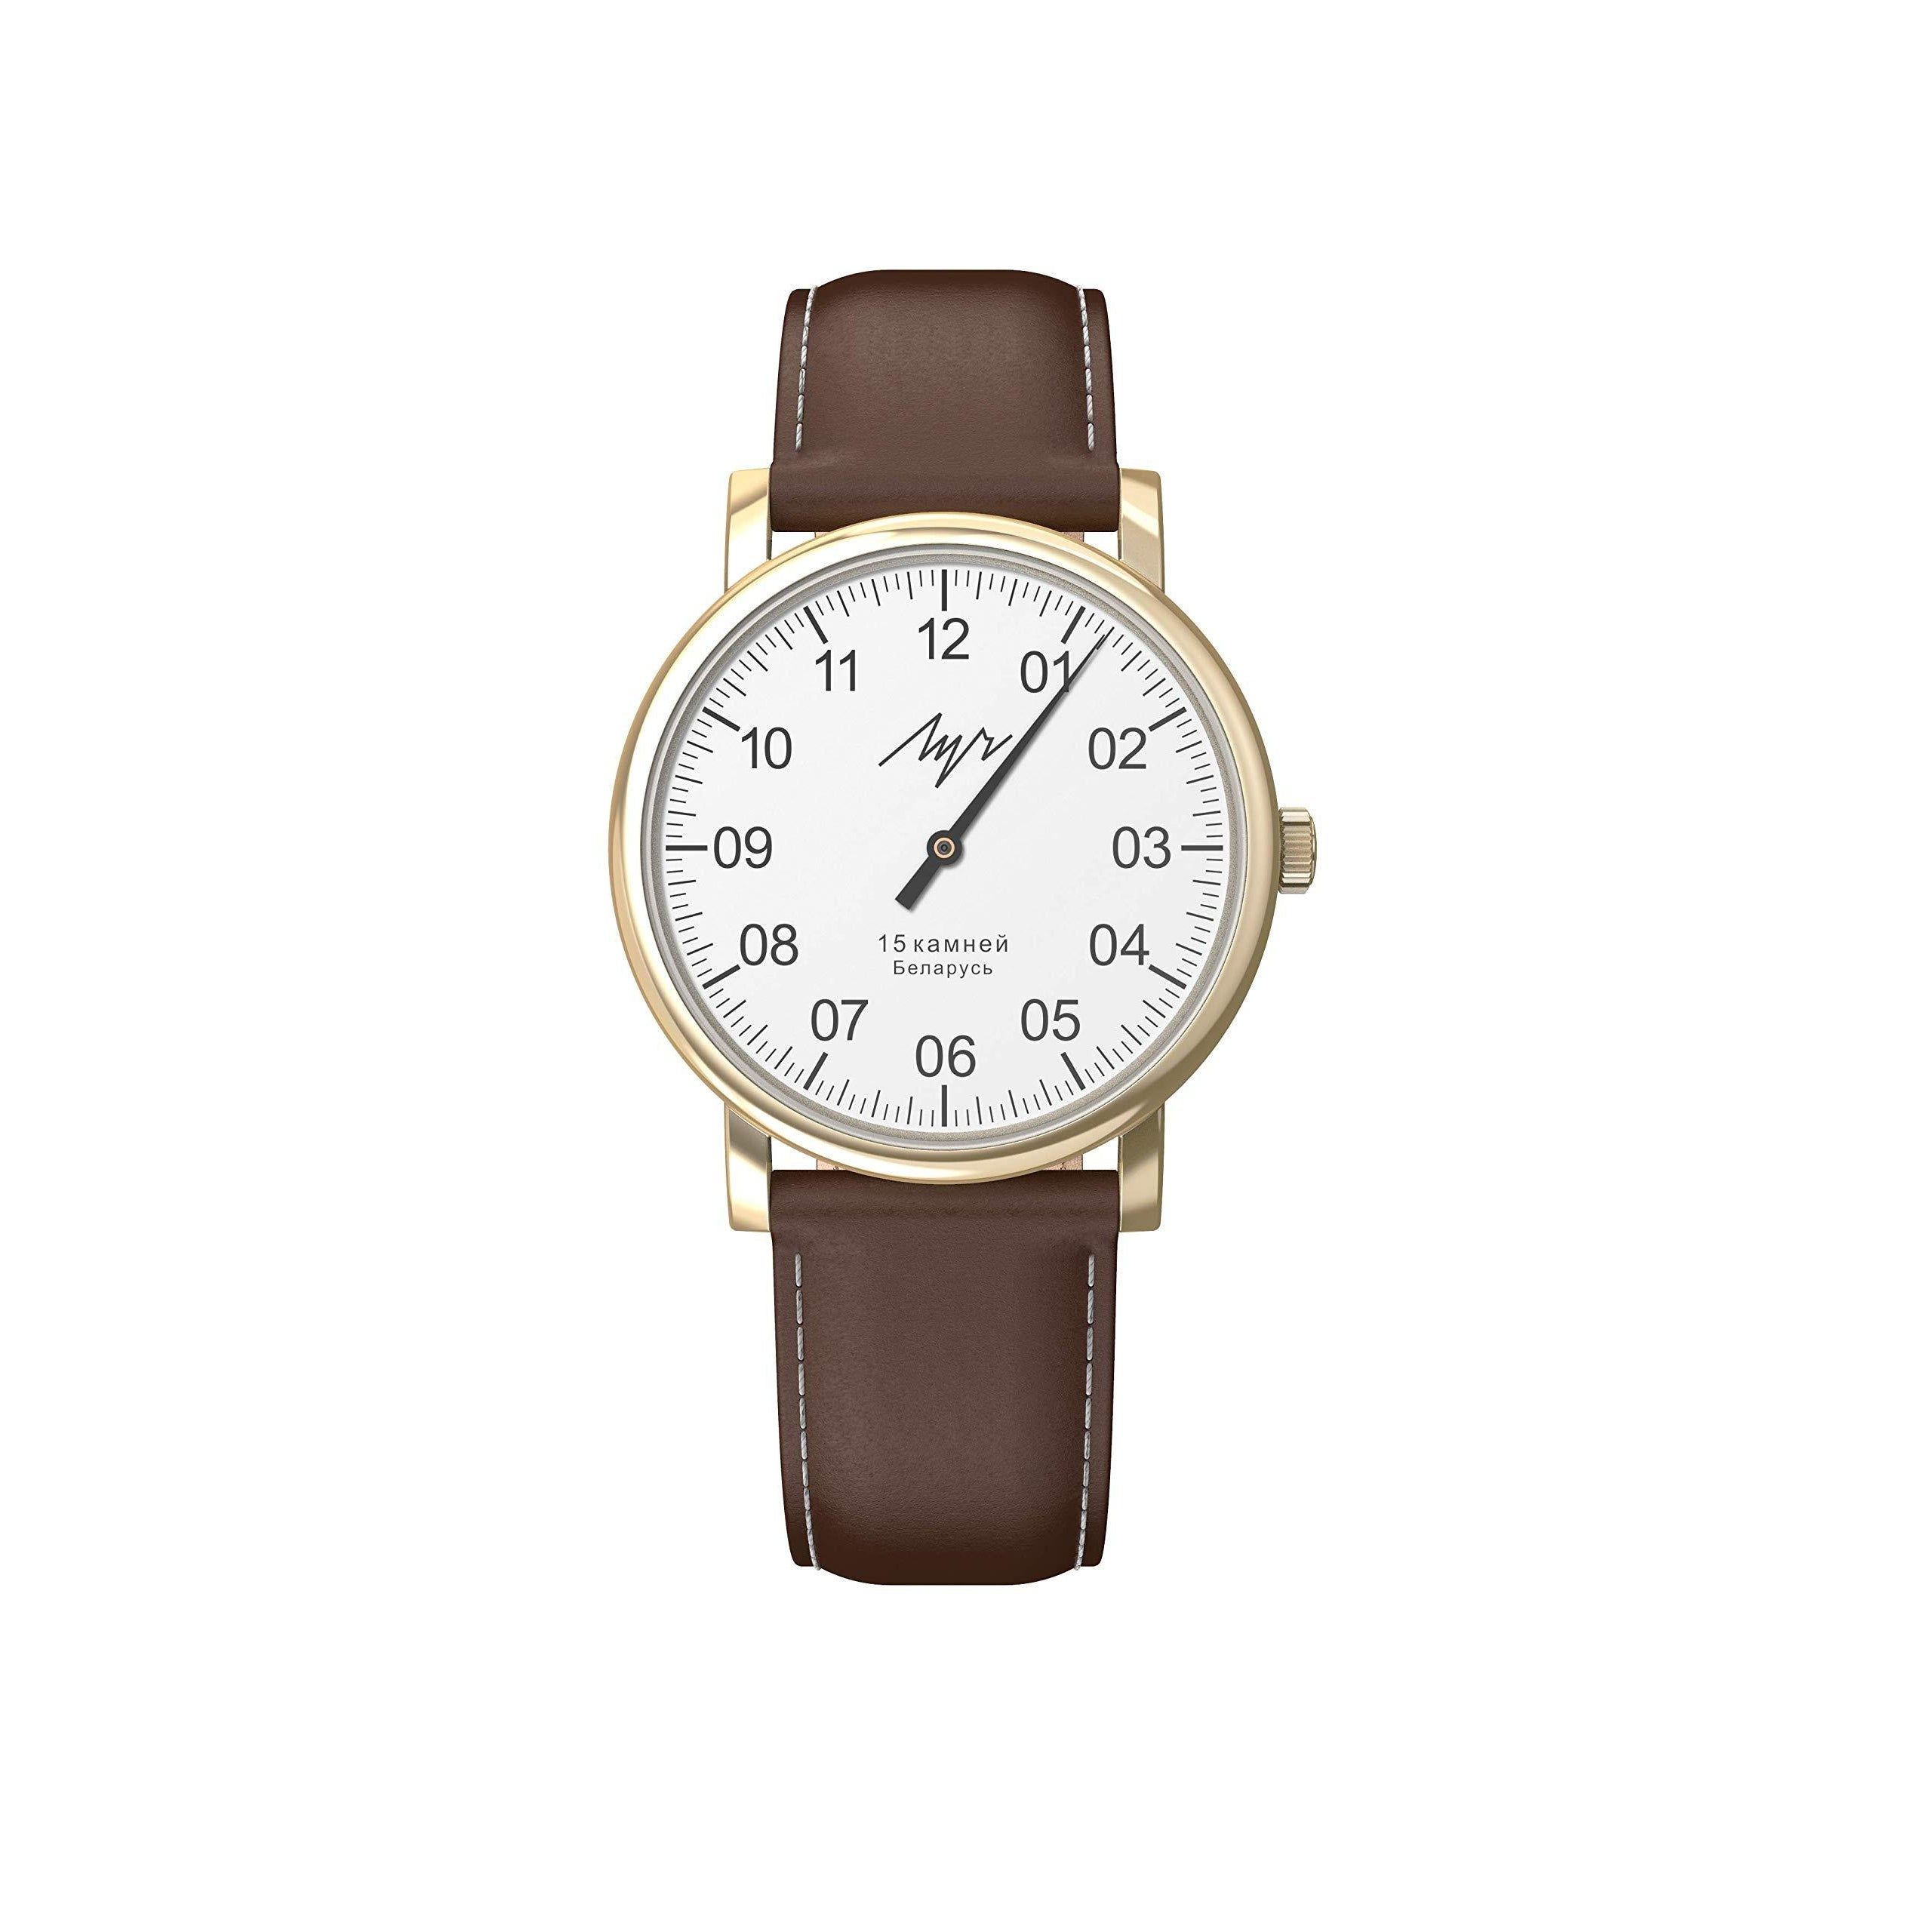 Luch Handwinding Watch - 337477760